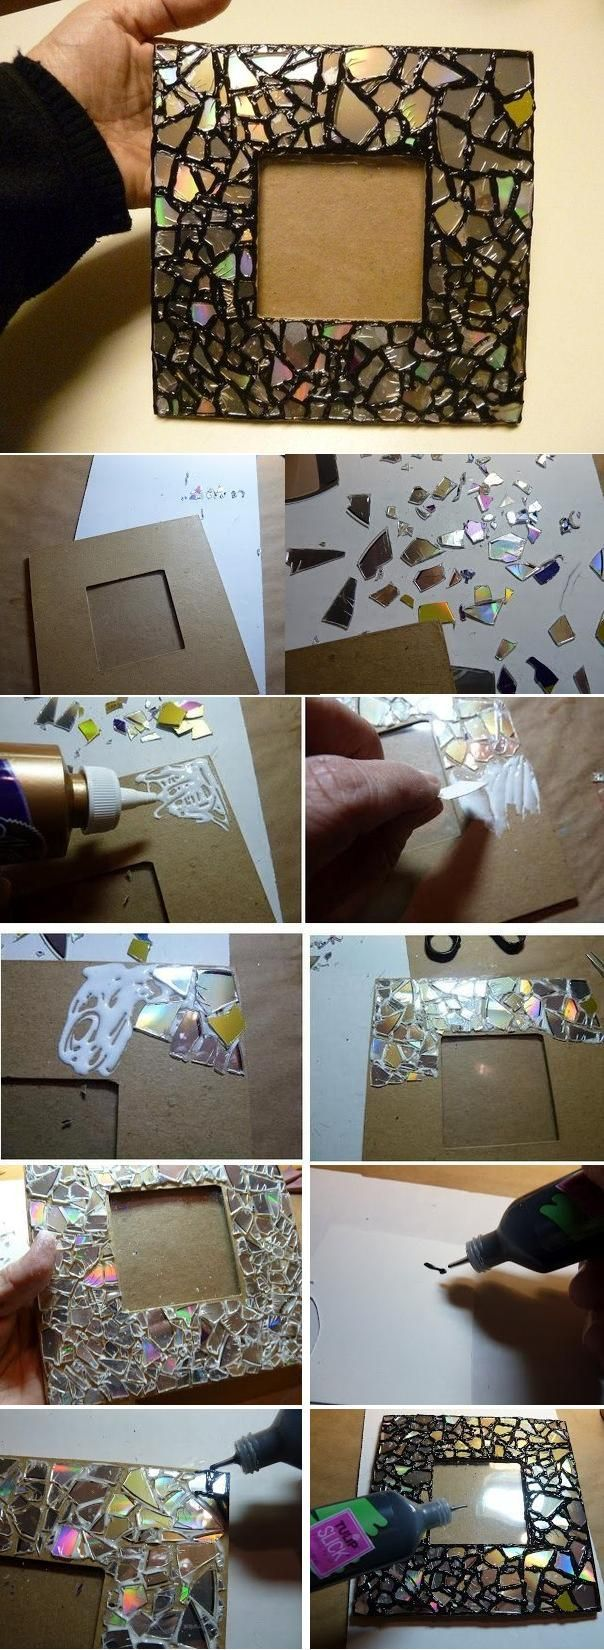 DIY Old CD Mosaic Mirror Frame (though I will probably never do this. I have other, better, uses for old CD's)